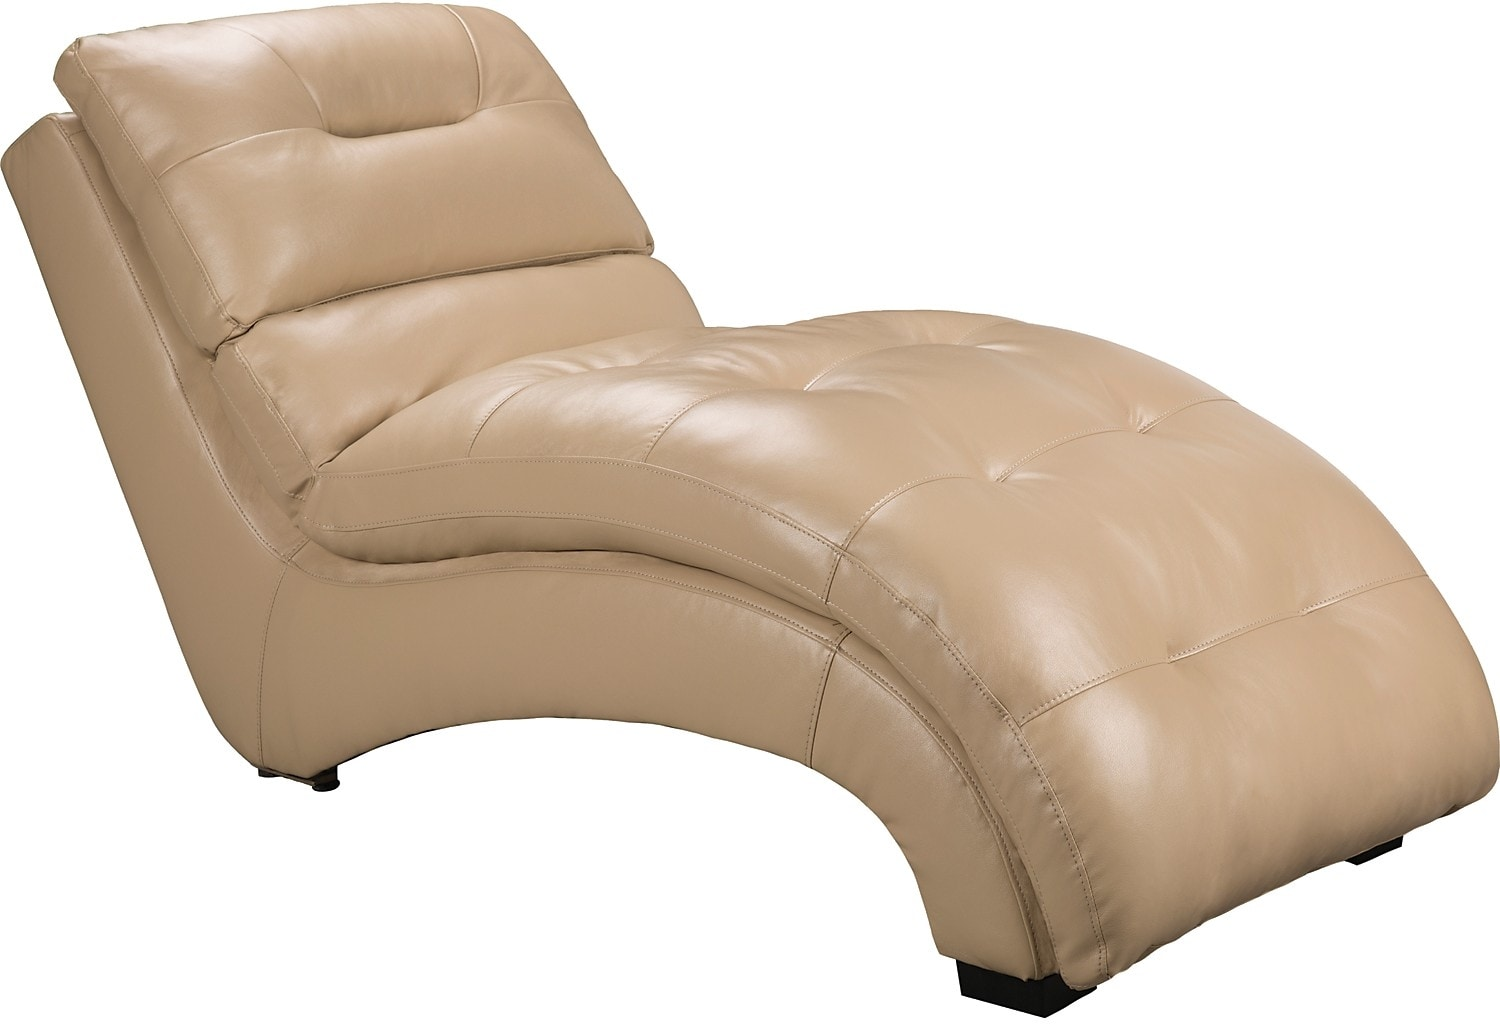 Charlie Faux Leather Curved Chaise - Cream